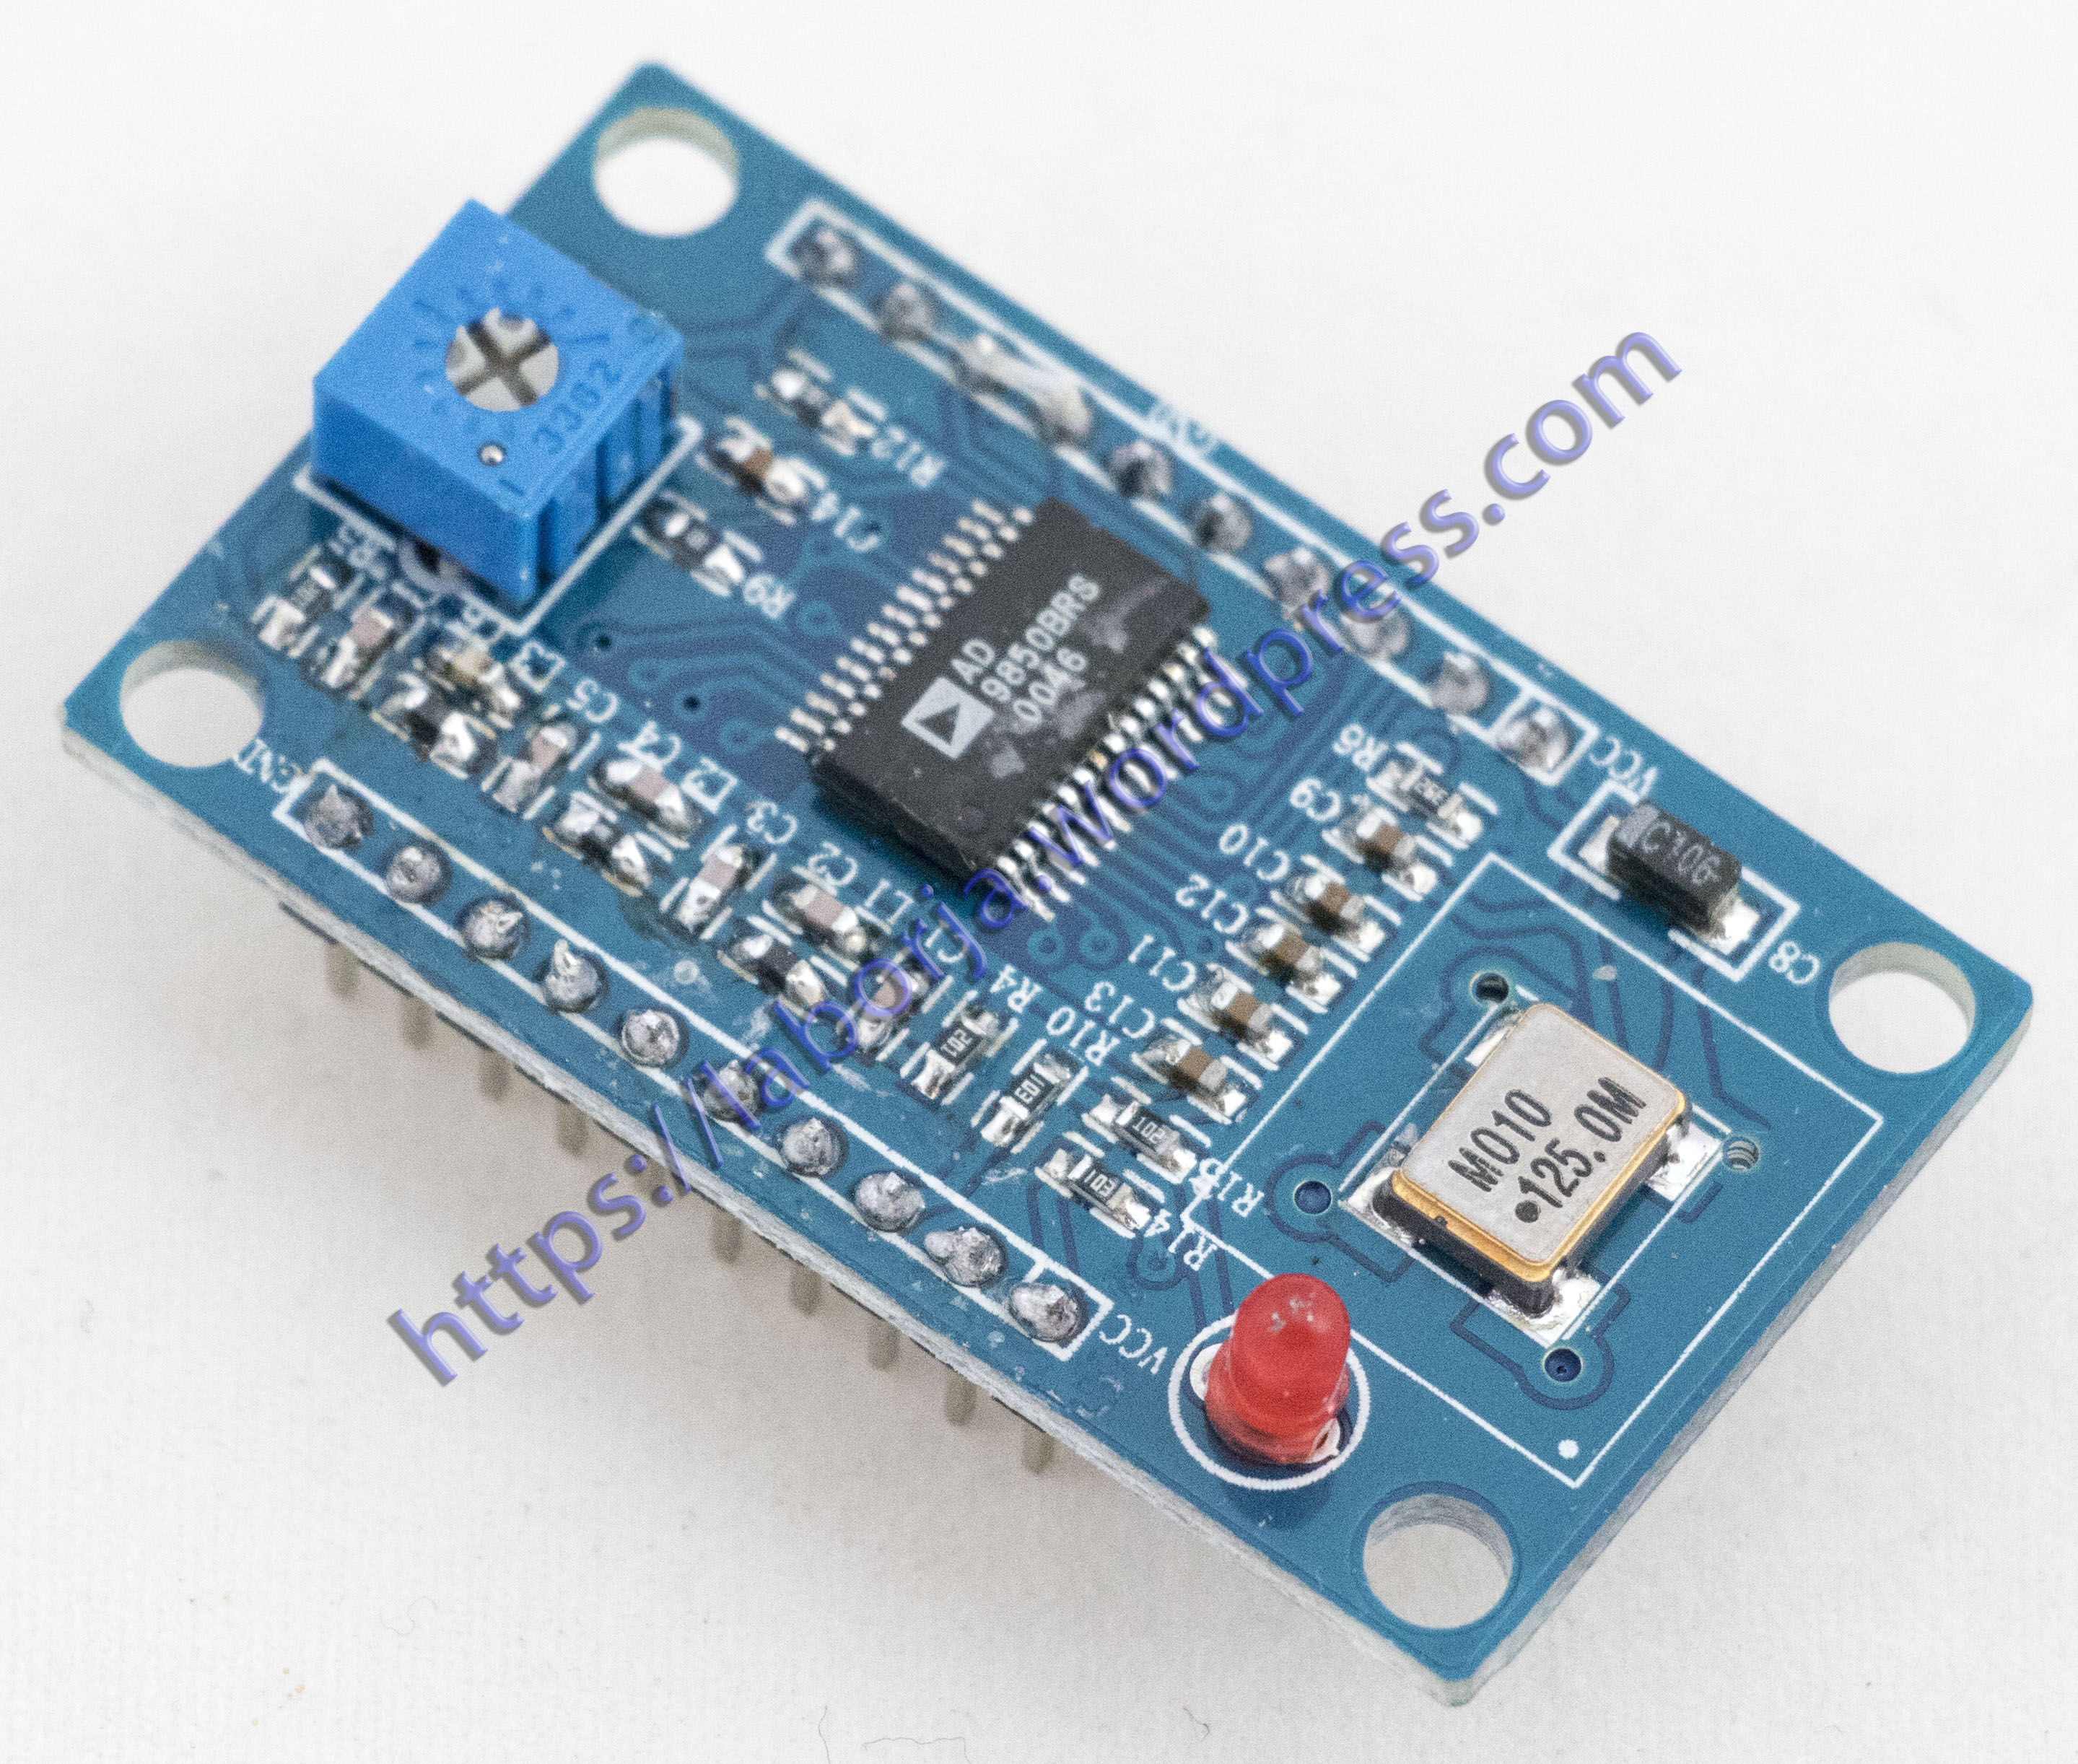 AD9850 DDS Signal Generator Module | Borja Home Page